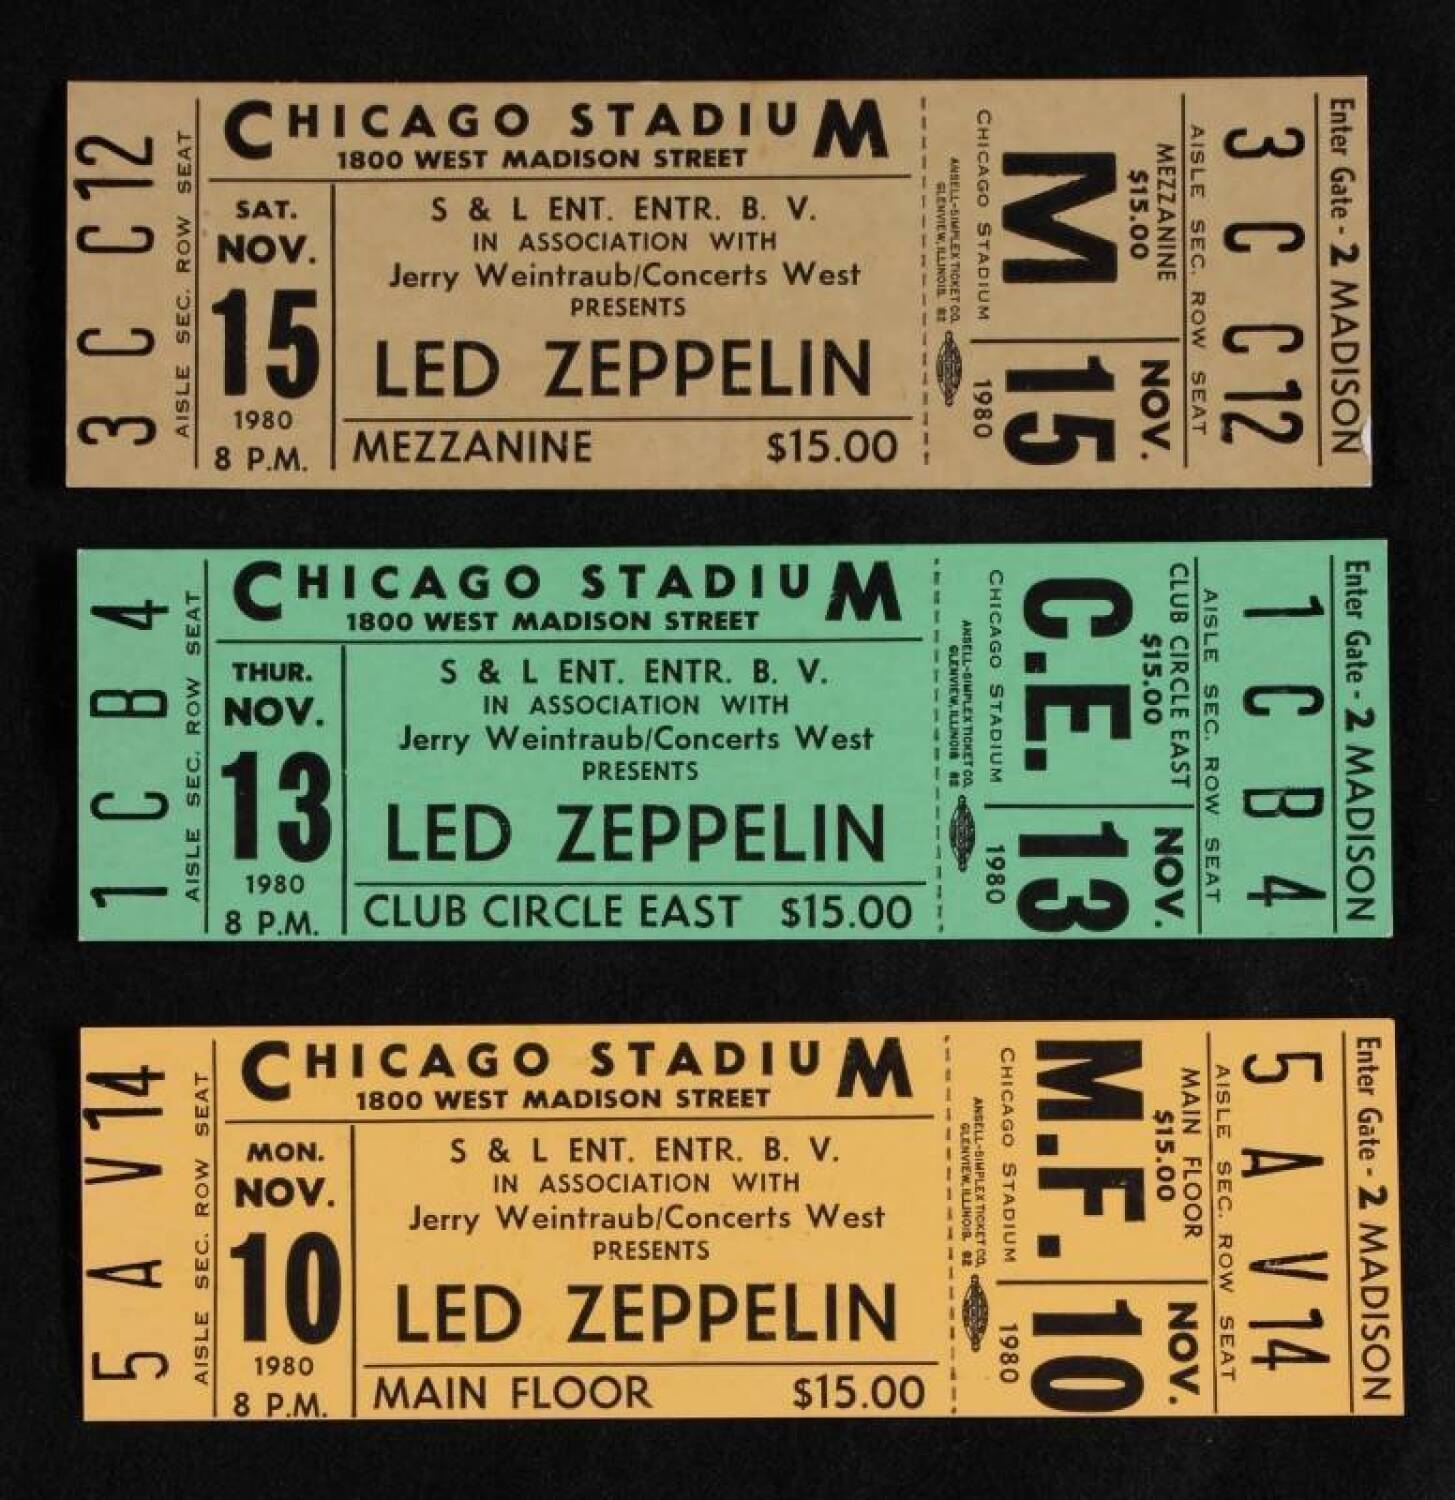 led zeppelin 1980 unused concert tickets current price 200. Black Bedroom Furniture Sets. Home Design Ideas